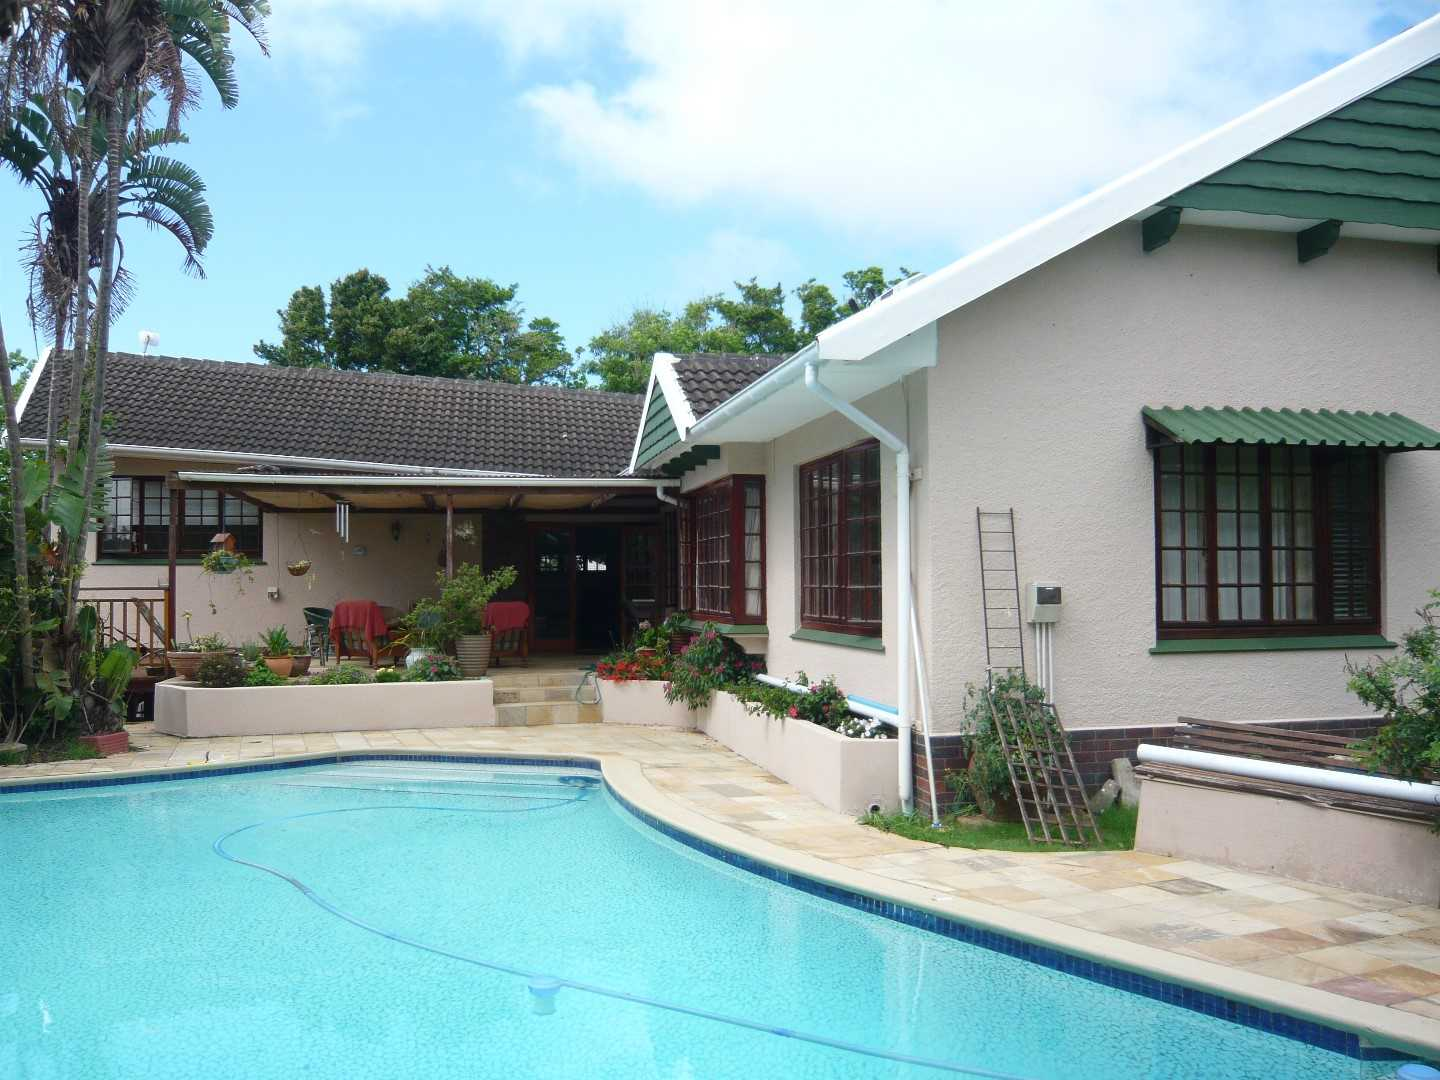 Location!Location! Much loved Family Home with pool and flat